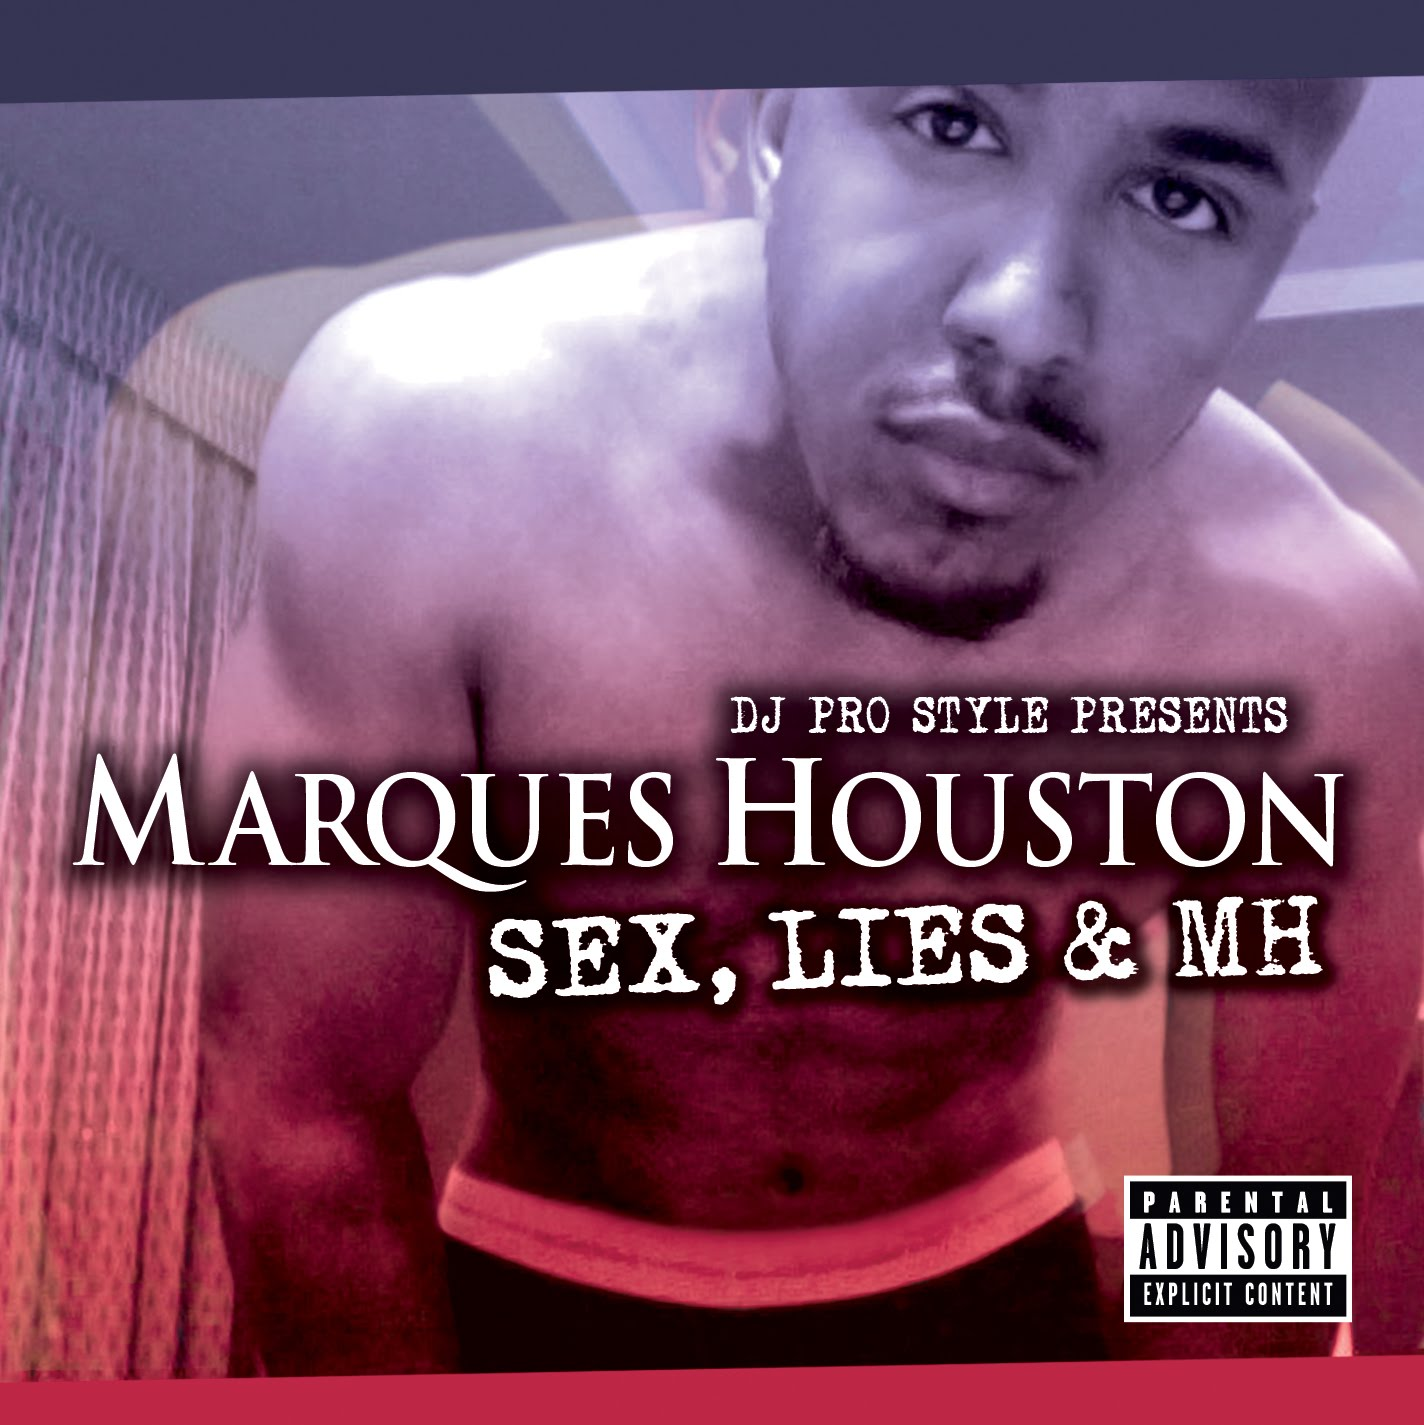 Houston like lyric marques sex